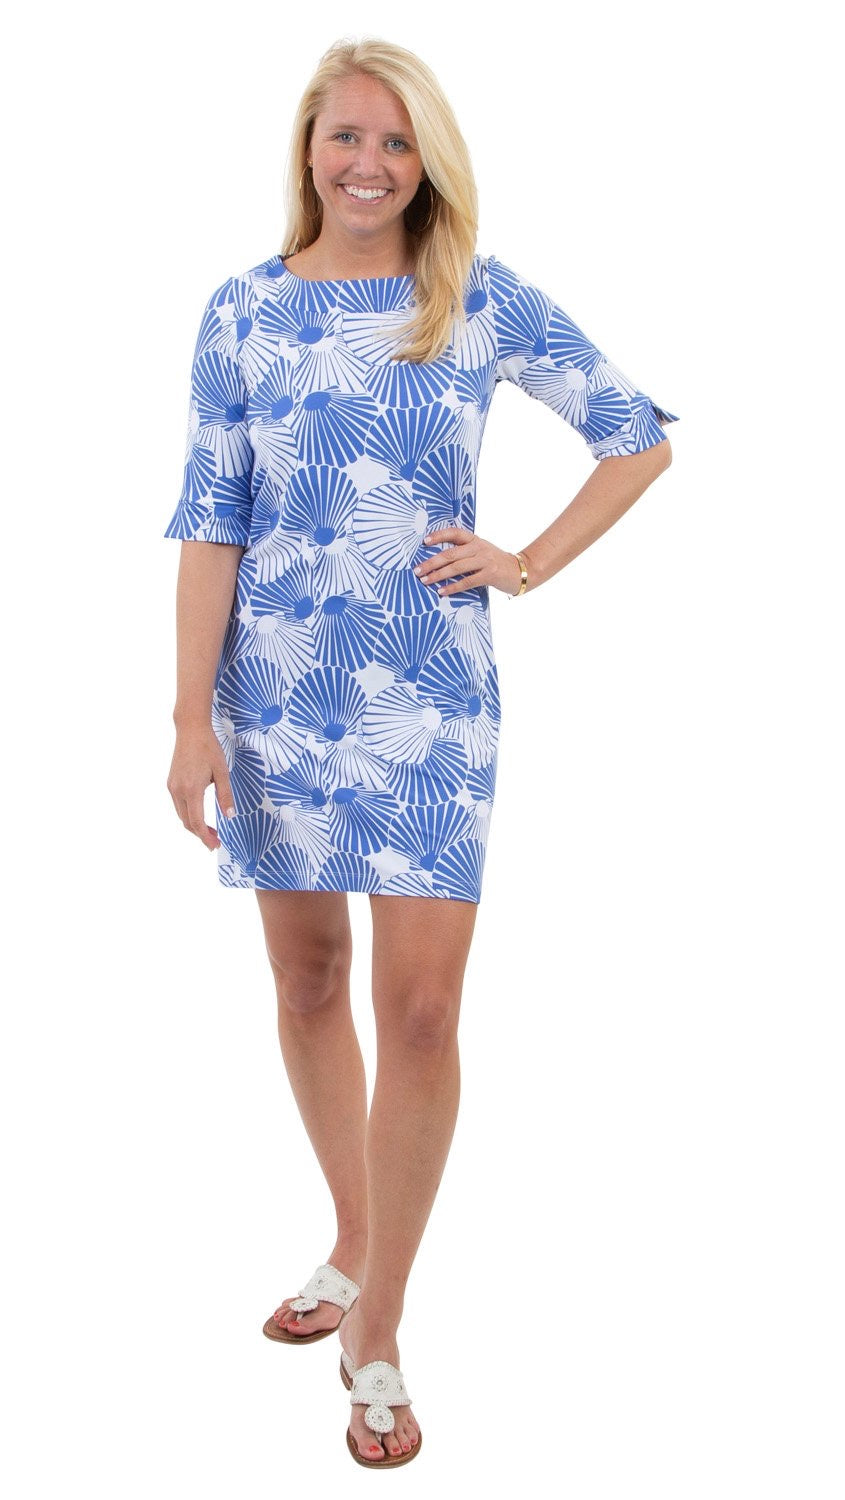 Yacht Club Shift in Blue Scattered Scallops by sailor sailor